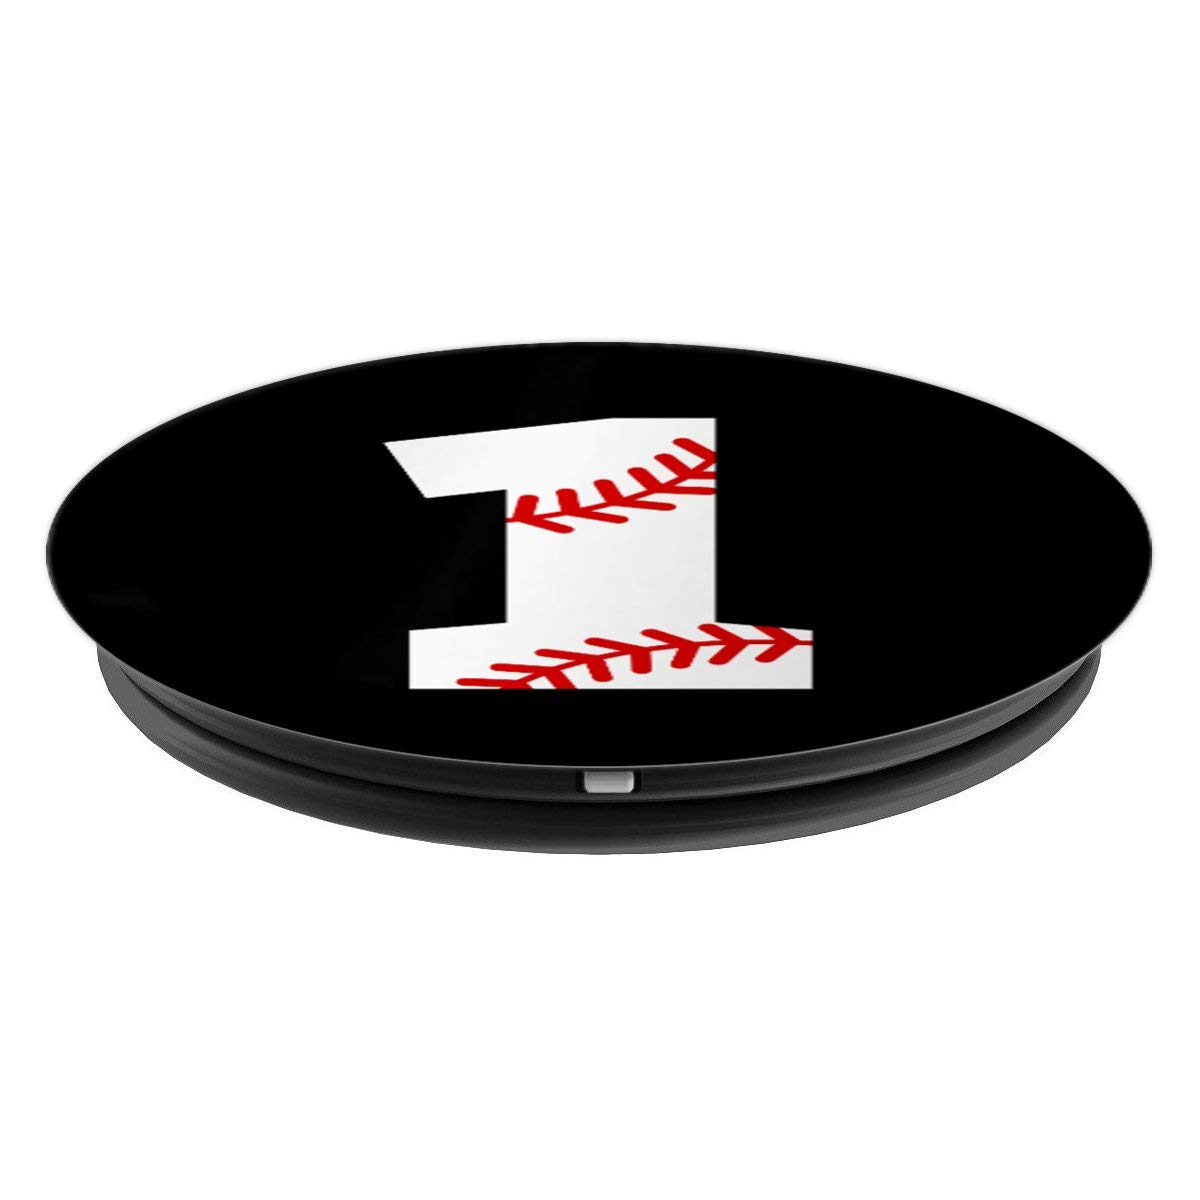 Amazon.com: Baseball Popsocket #1 – Enchufe Pop de béisbol ...